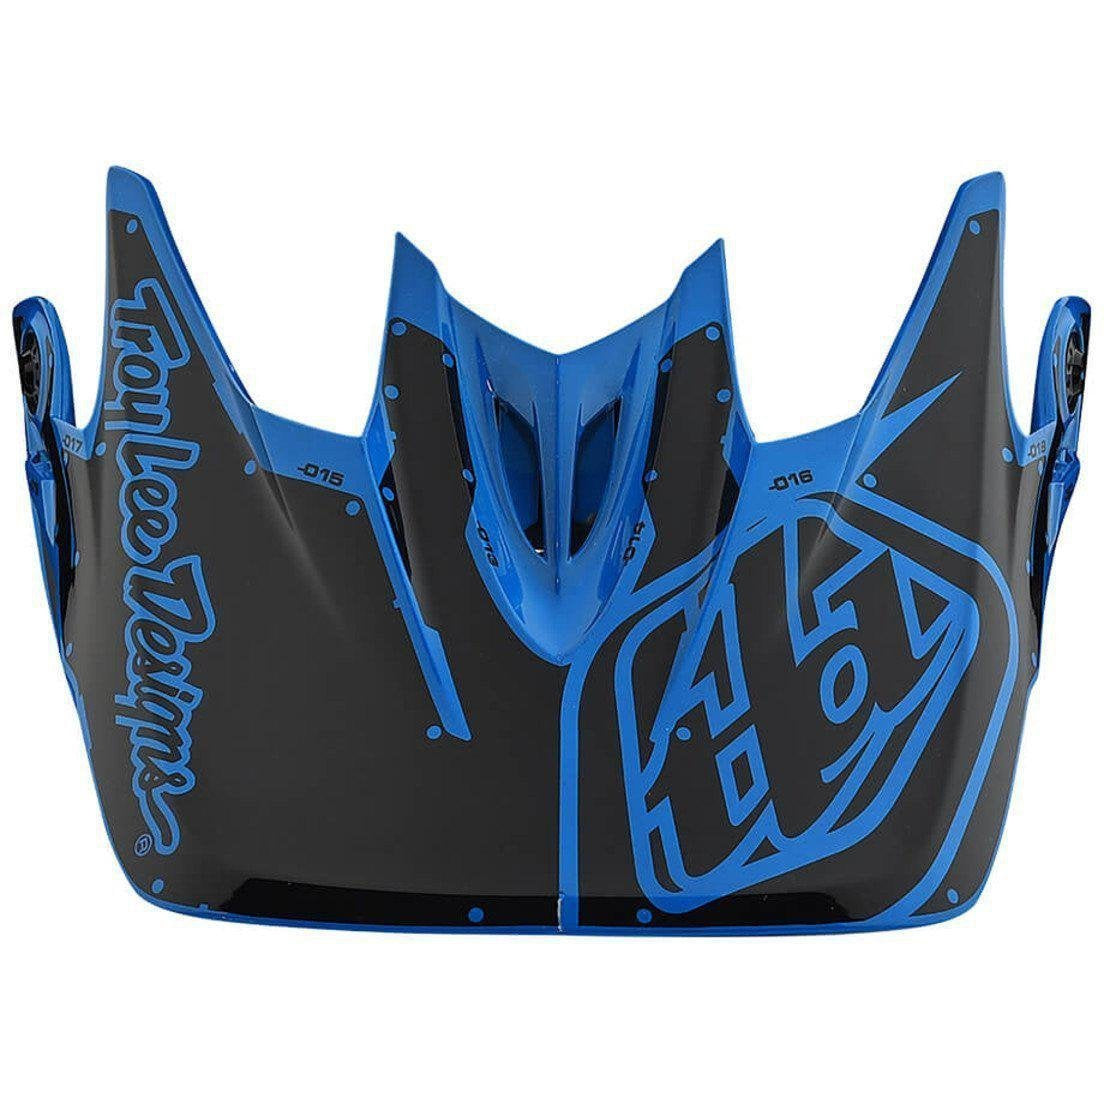 Troy Lee Designs-Troy Lee Designs D3 Helmet Replacement Visor-FACTORY OCEAN-D3 Fiberlite-TLD157008300-saddleback-elite-performance-cycling